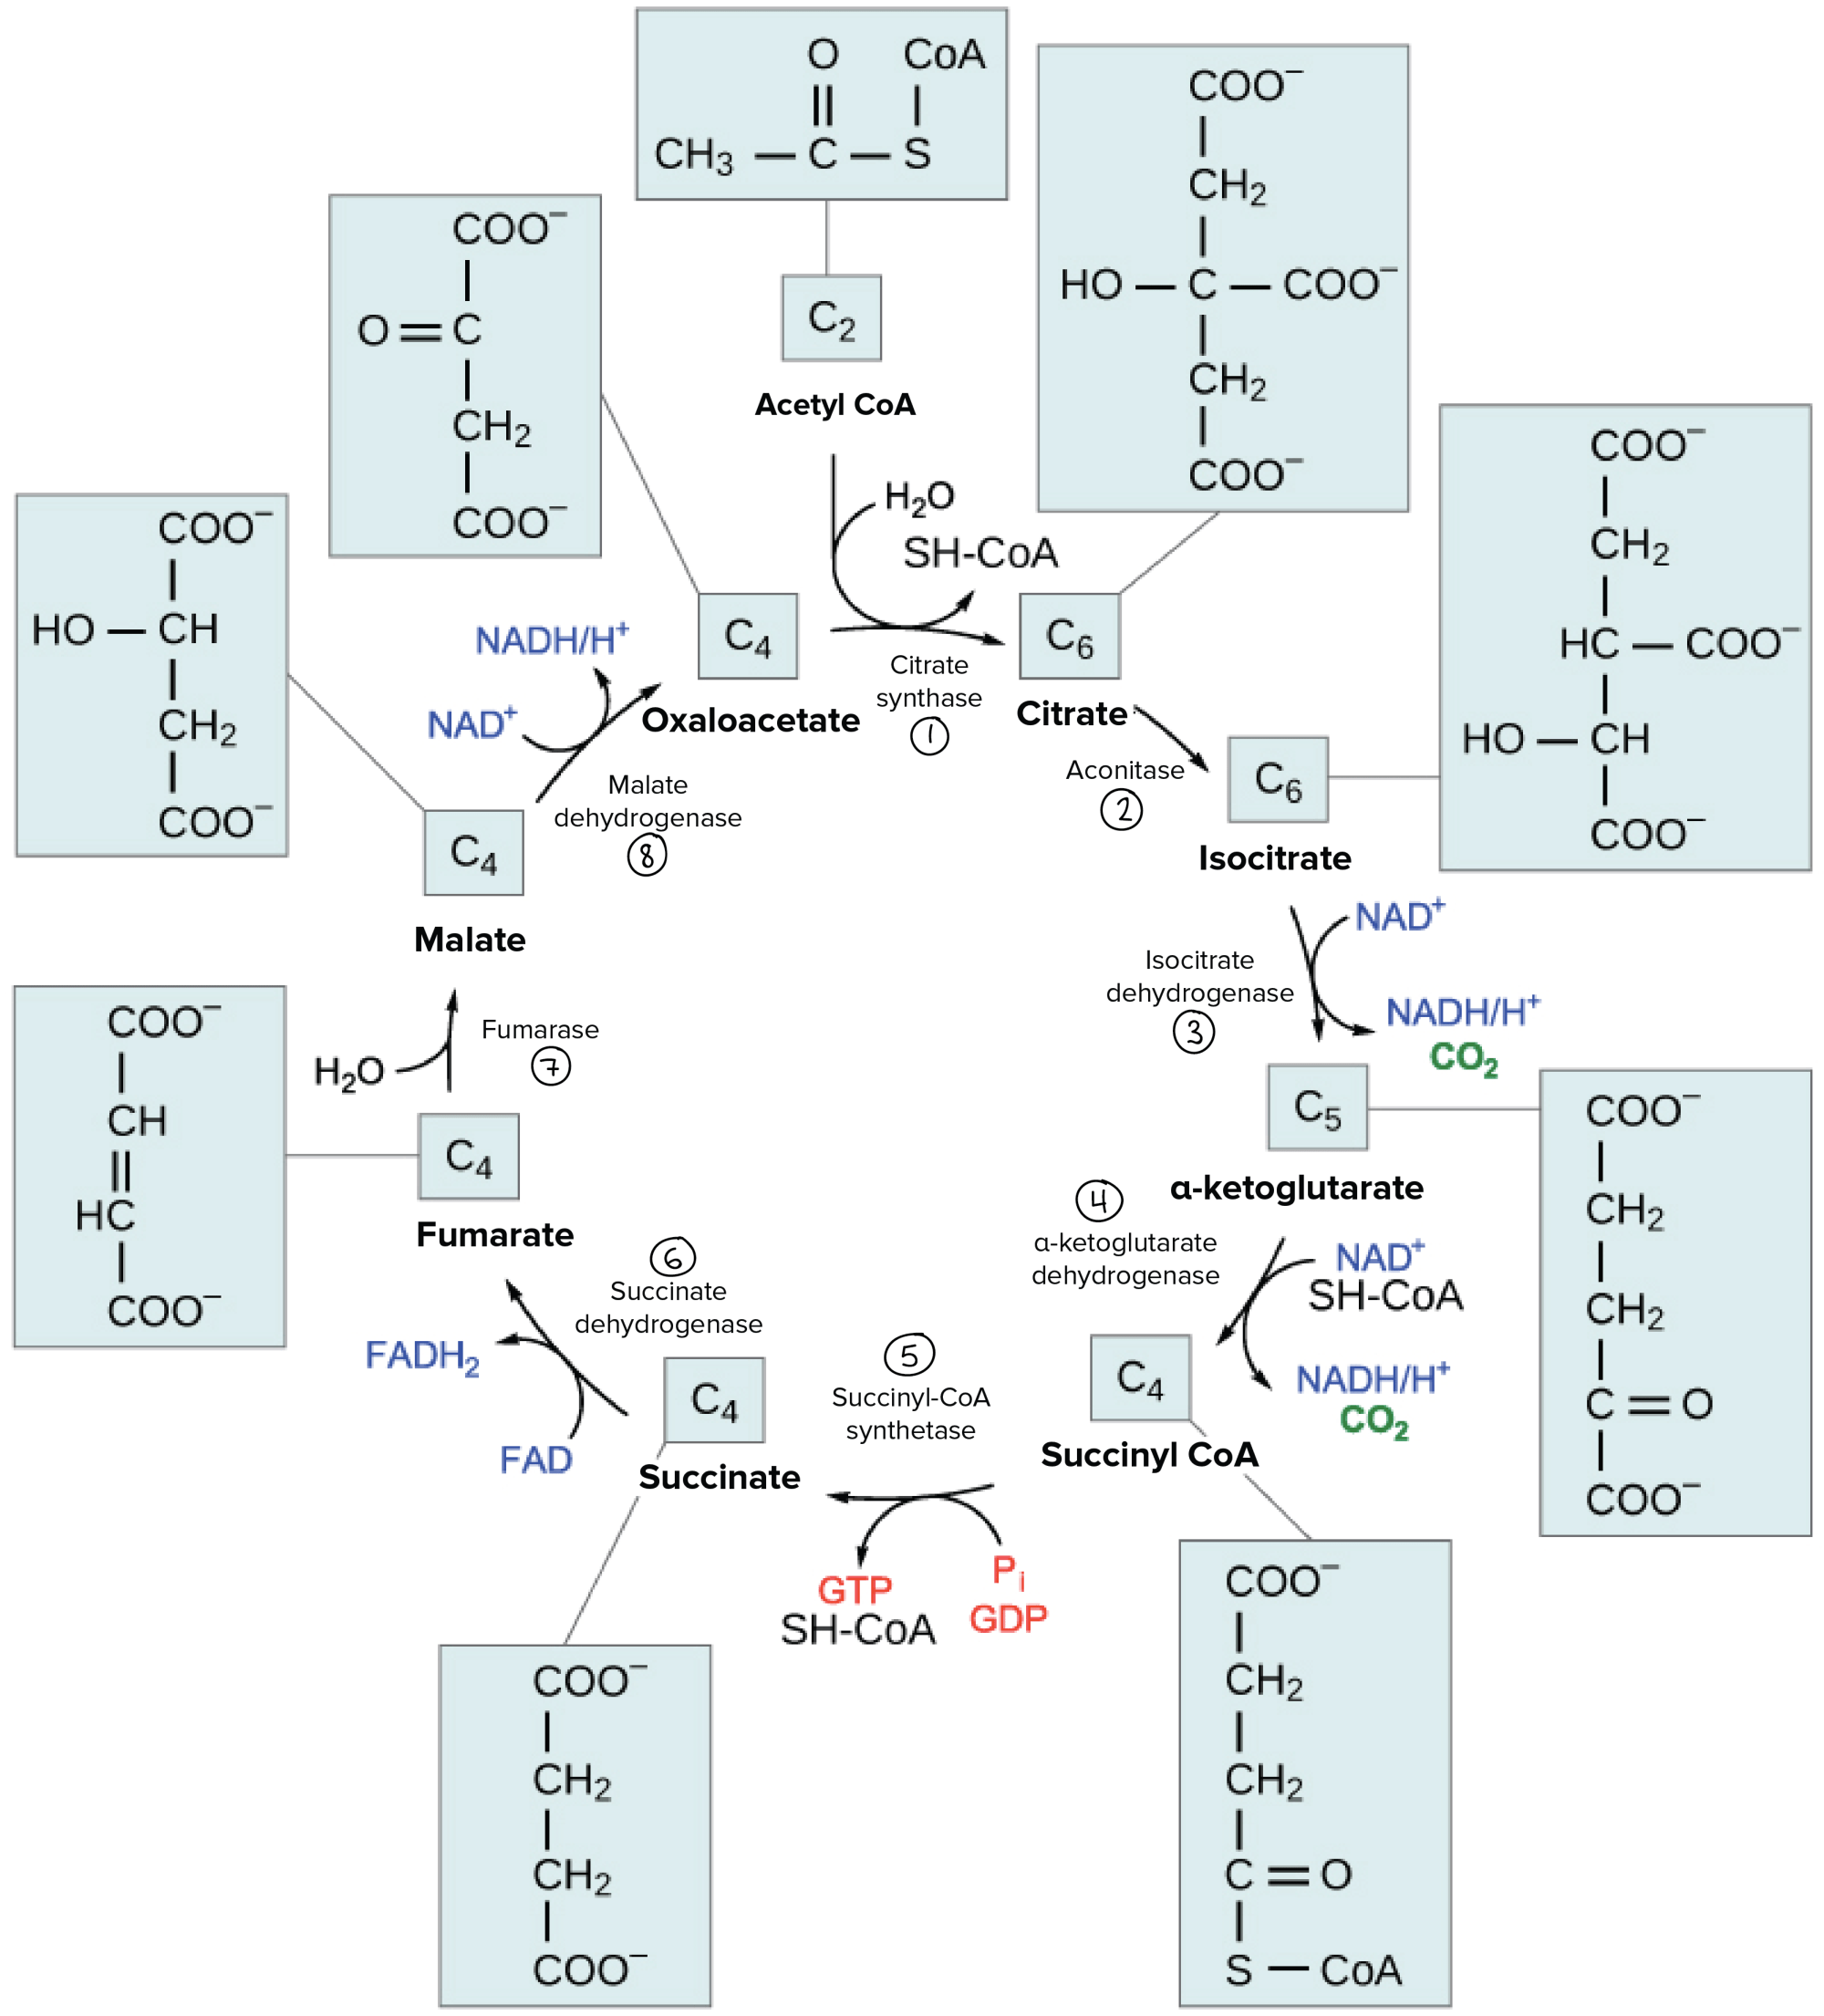 hight resolution of detailed diagram of the citric acid cycle showing the structures of the various cycle intermediates